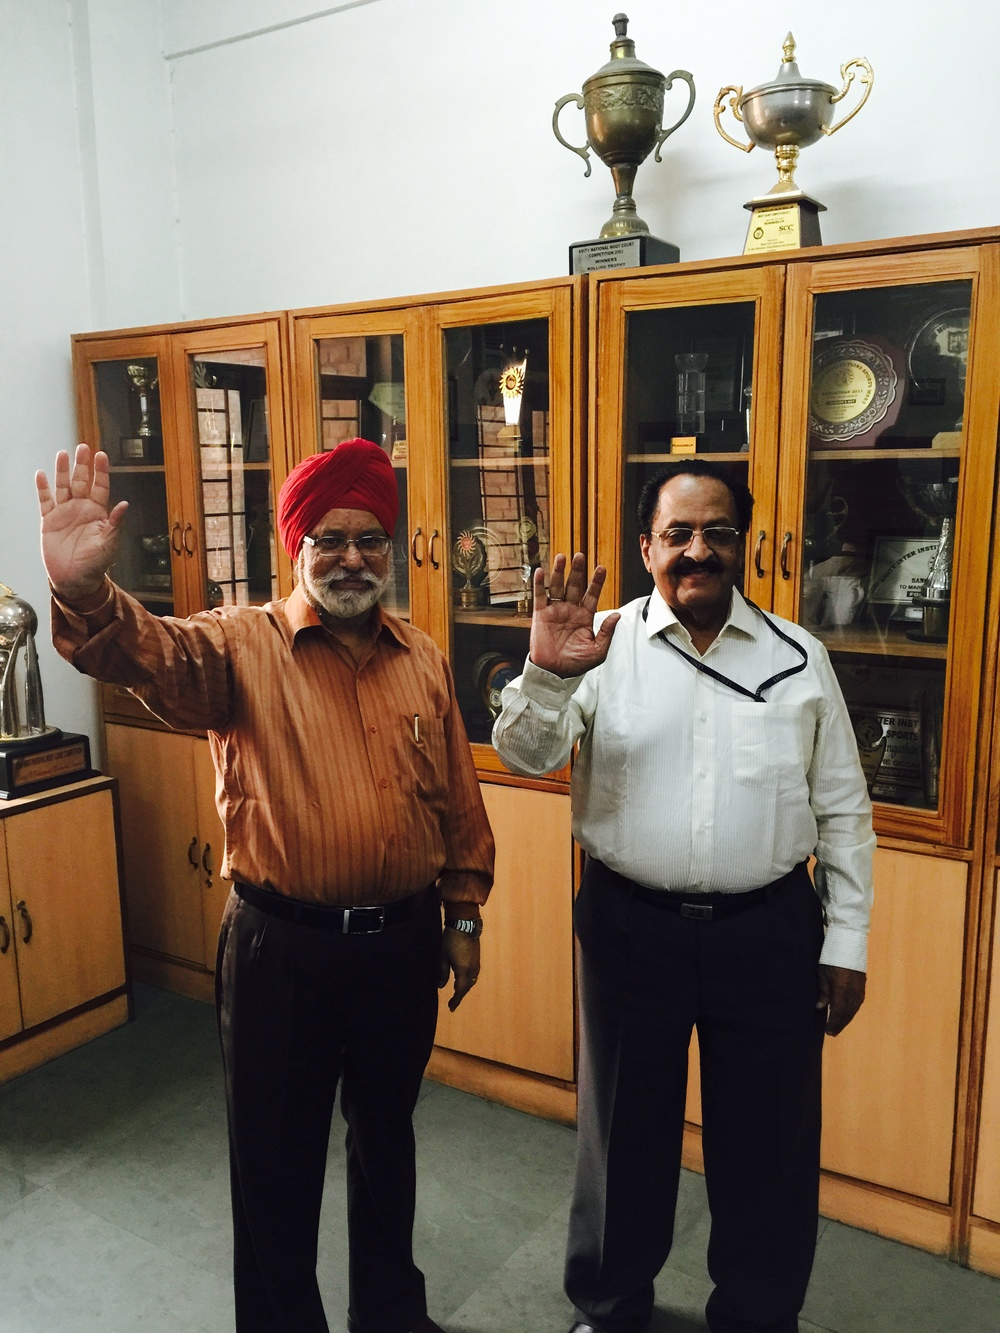 Prof. (Dr.) B. P. Singh Sehgal, Director, Amity Law School, Delhi. On the right: Prof. (Dr.) M. K. Balachandran, a professor of eminence and chair of Law, amity law school, Delhi waving goodbye to nuclear weapons!